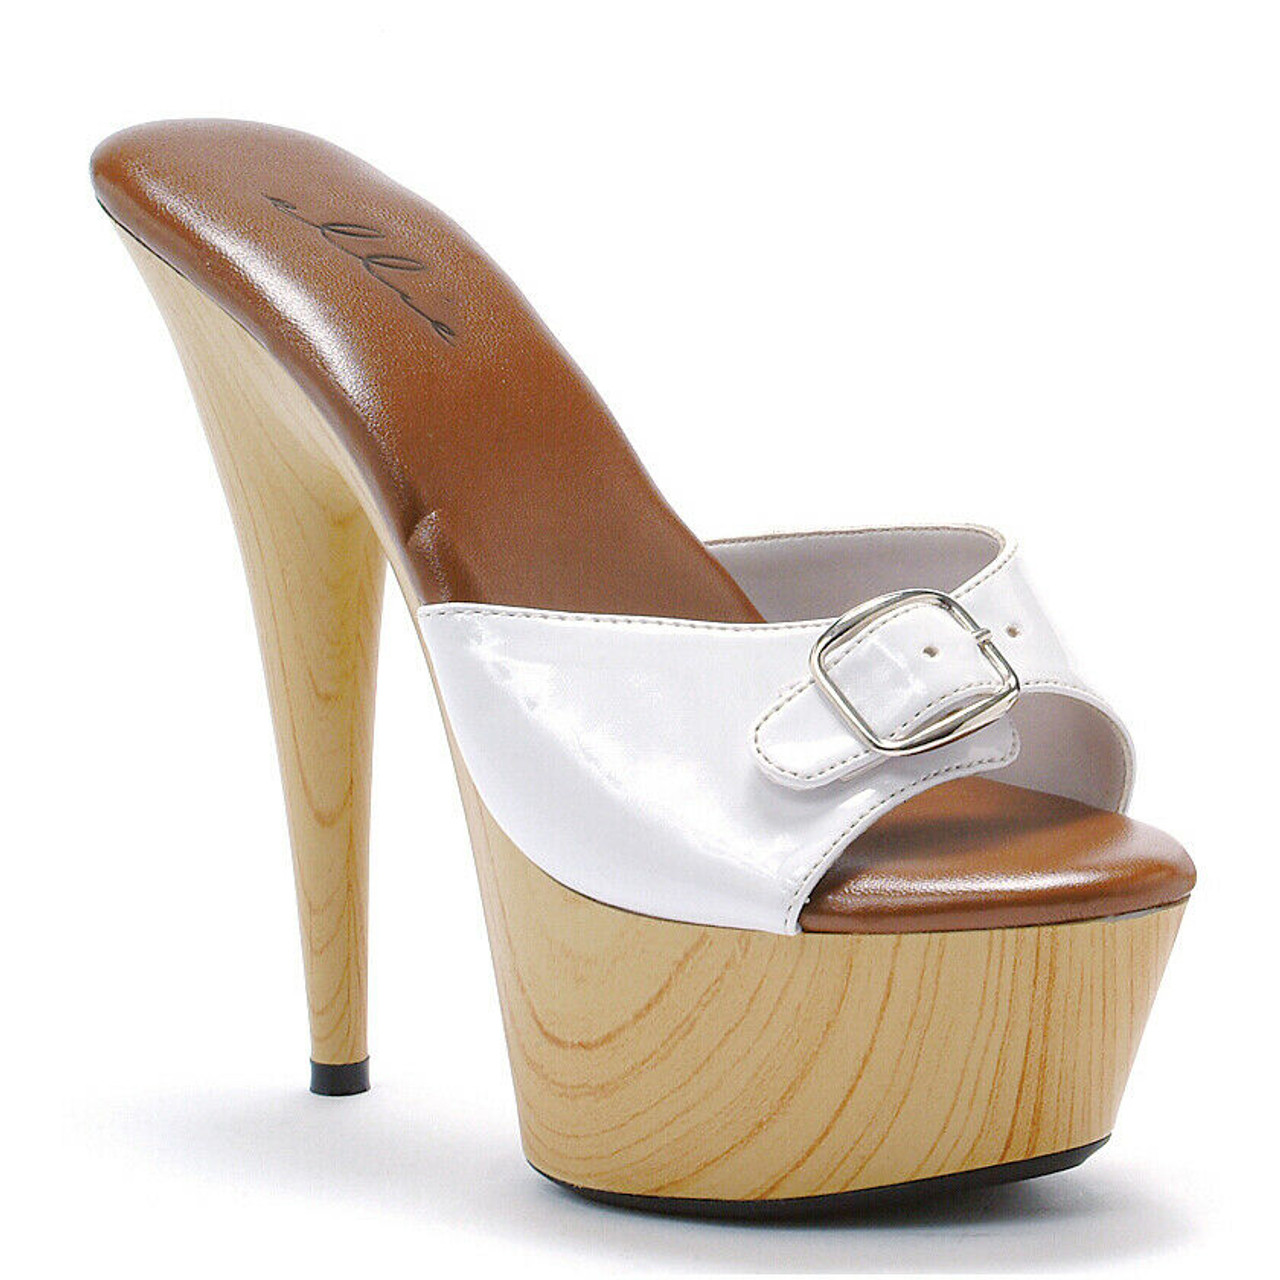 a5e8a6b808355 Ellie Shoes Mule Wooden Buckles White Costume Platforms Heels Shoes  609-BARBARA